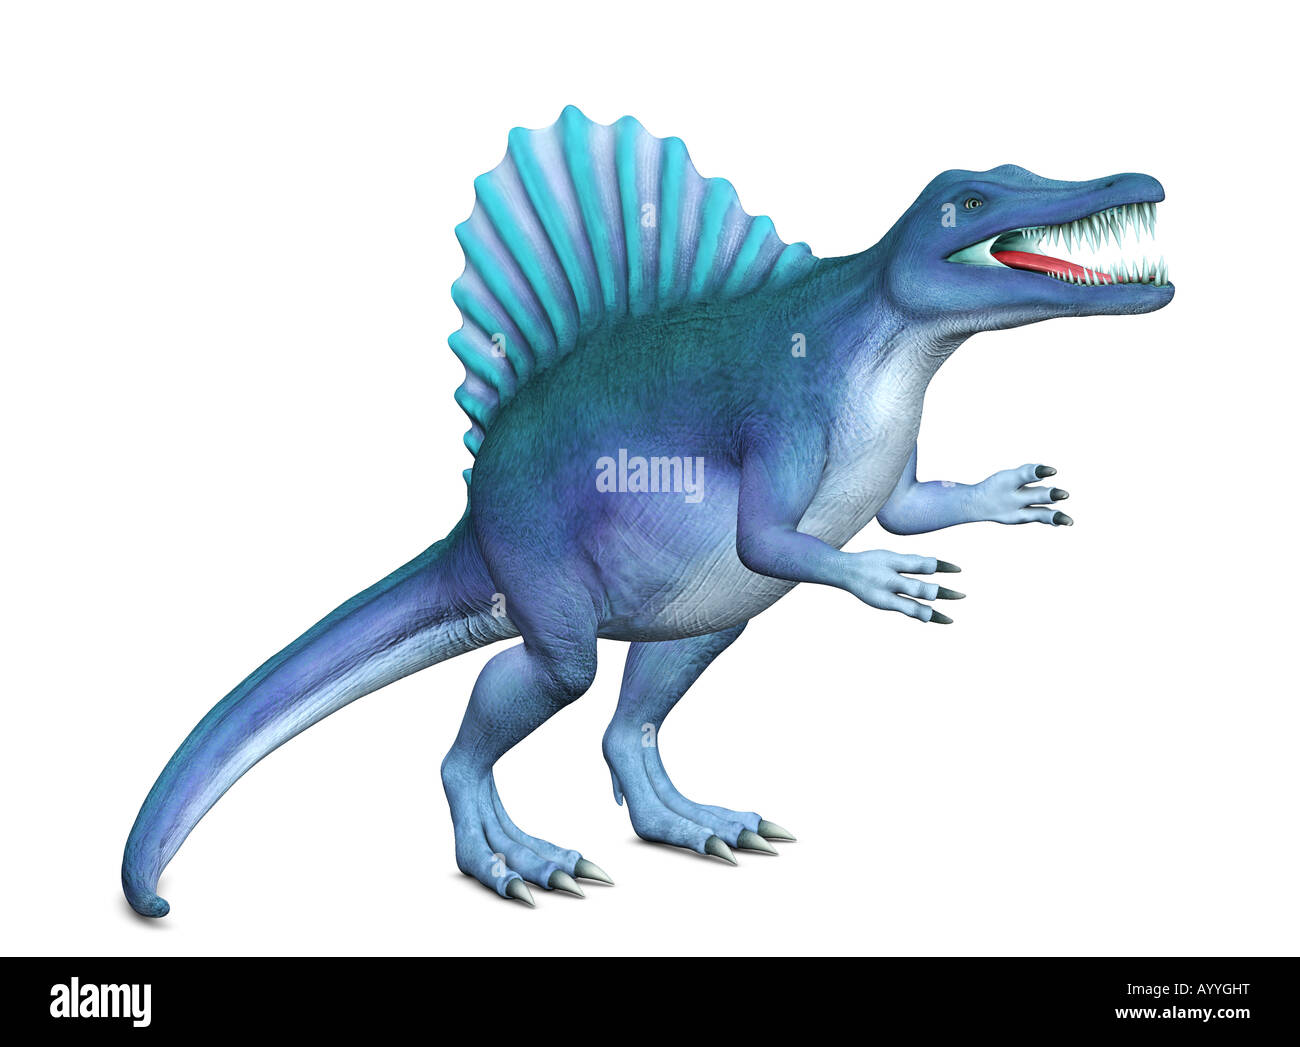 Spinosaurus created with 3D applications. Spinosaurus is one of the late cretaceous dinosaurs with a 'sail' - Stock Image